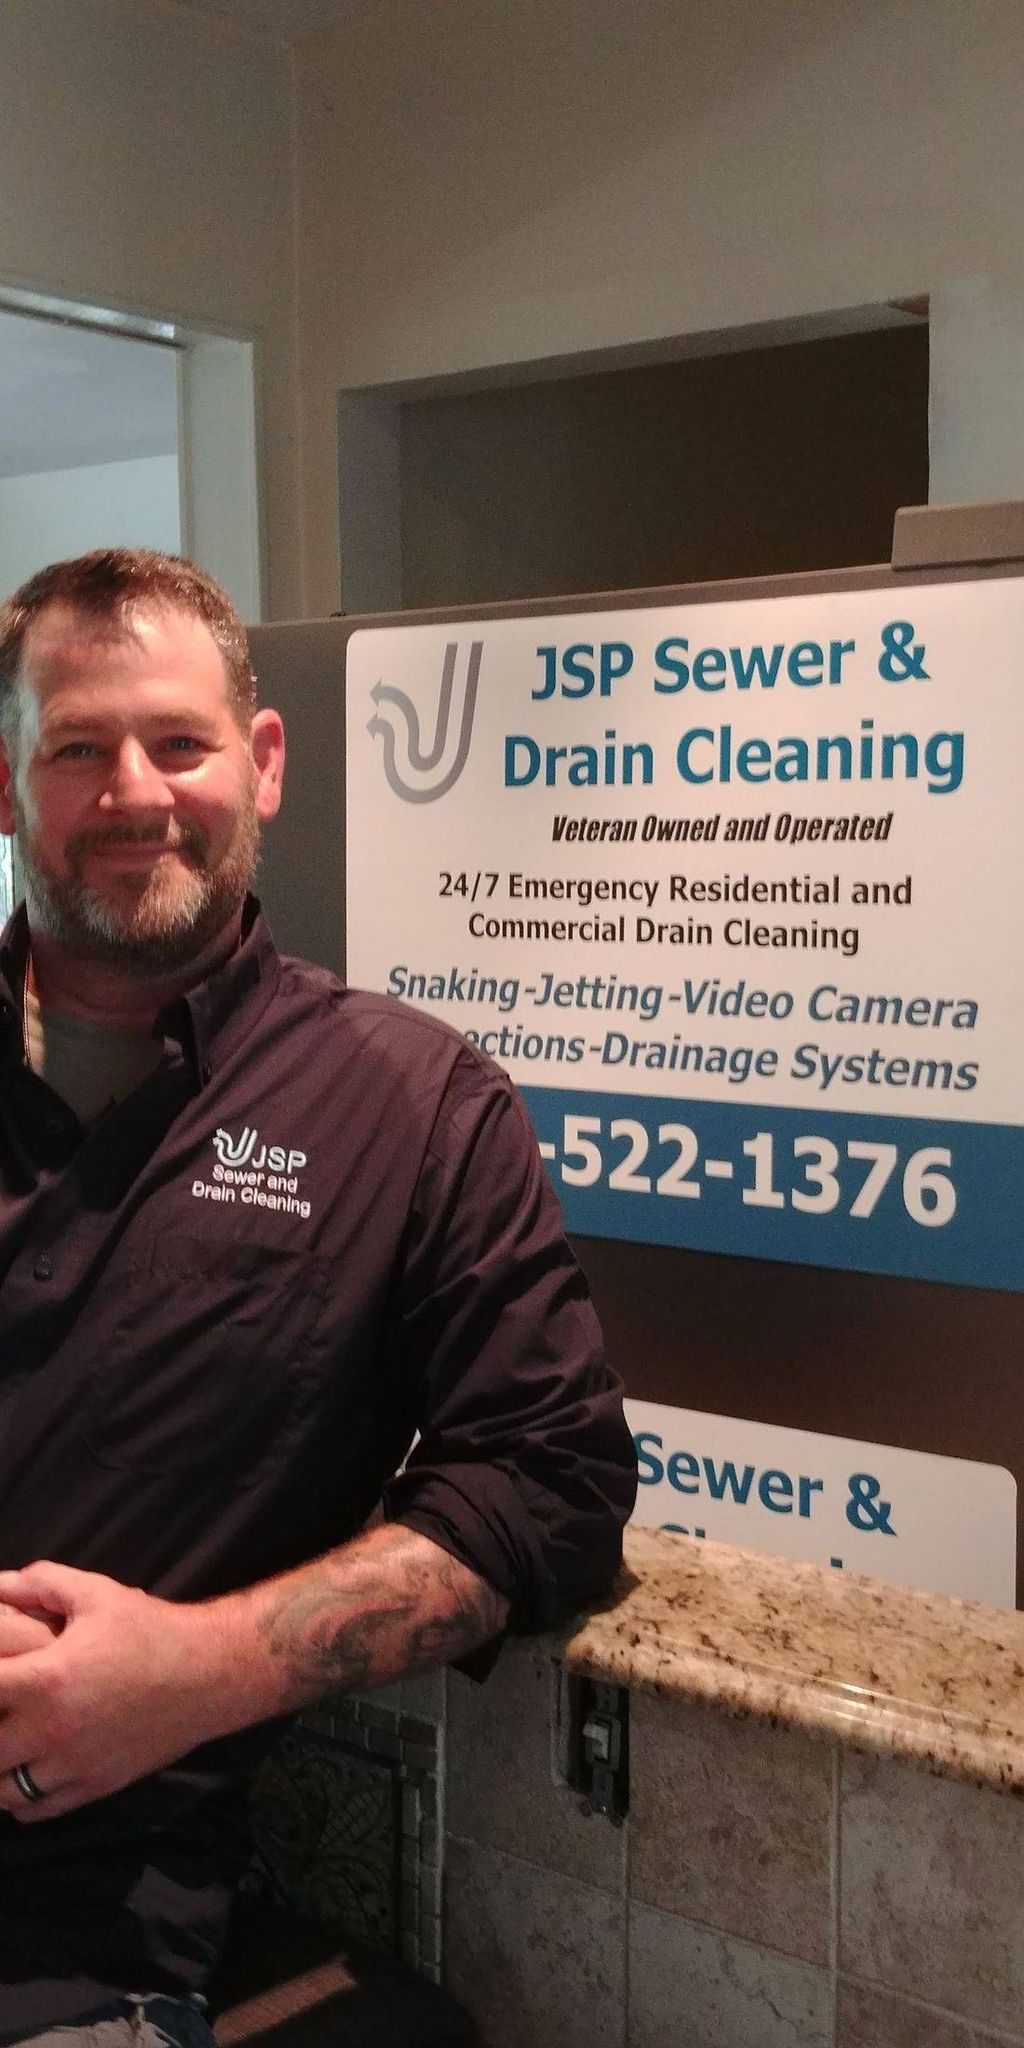 JSP Sewer & Drain Cleaning